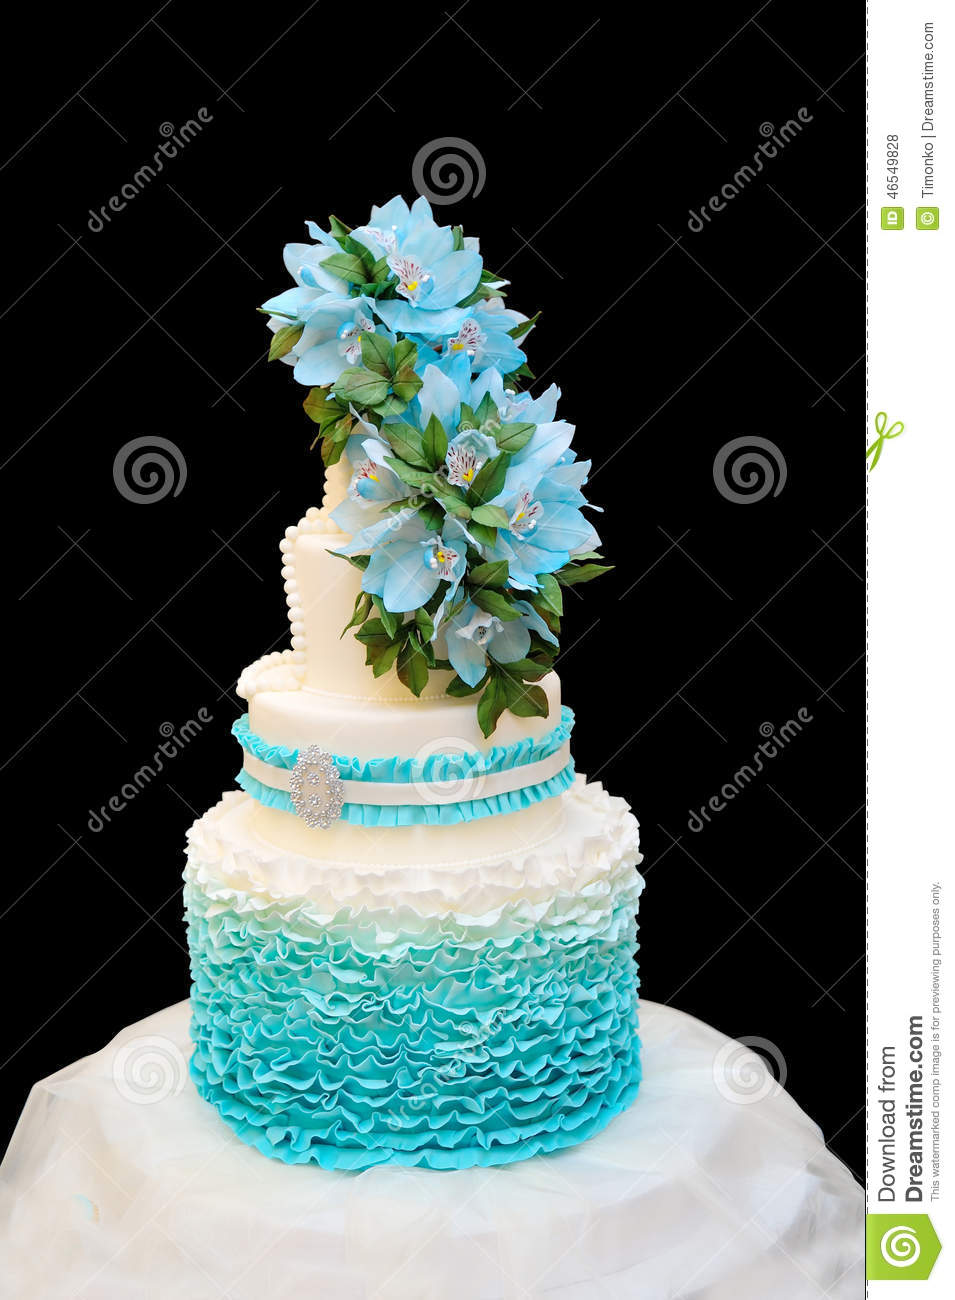 Blue Wedding Cake On A Black Background Stock Photo - Image: 46549828